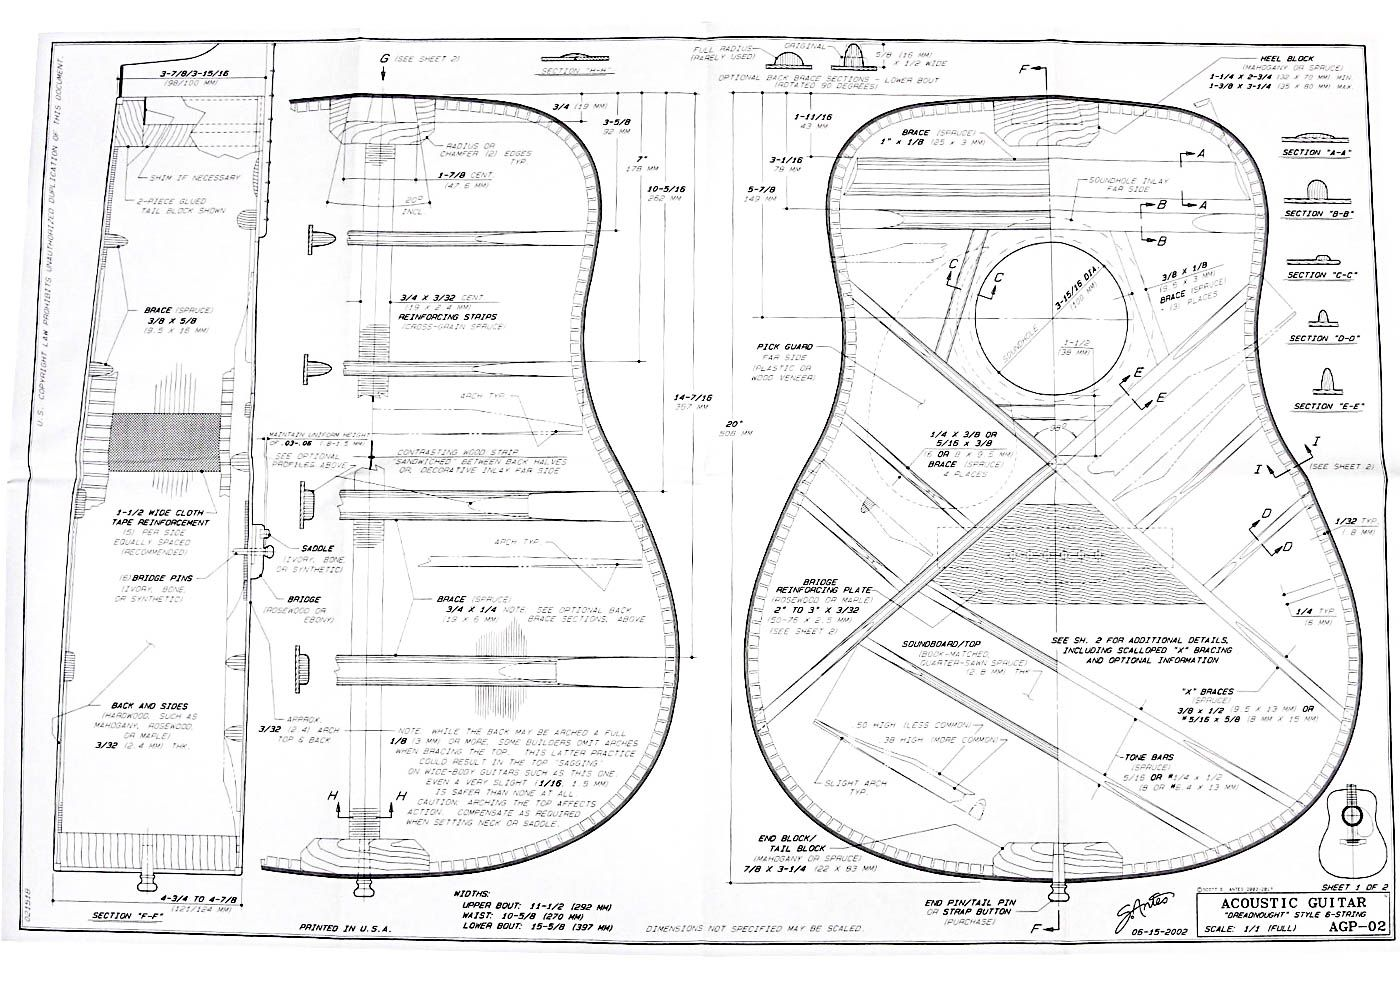 Full Size Blueprint For Dreadnought Style Acoustic Guitar Pl In 2020 Acoustic Guitar Guitar Blueprints